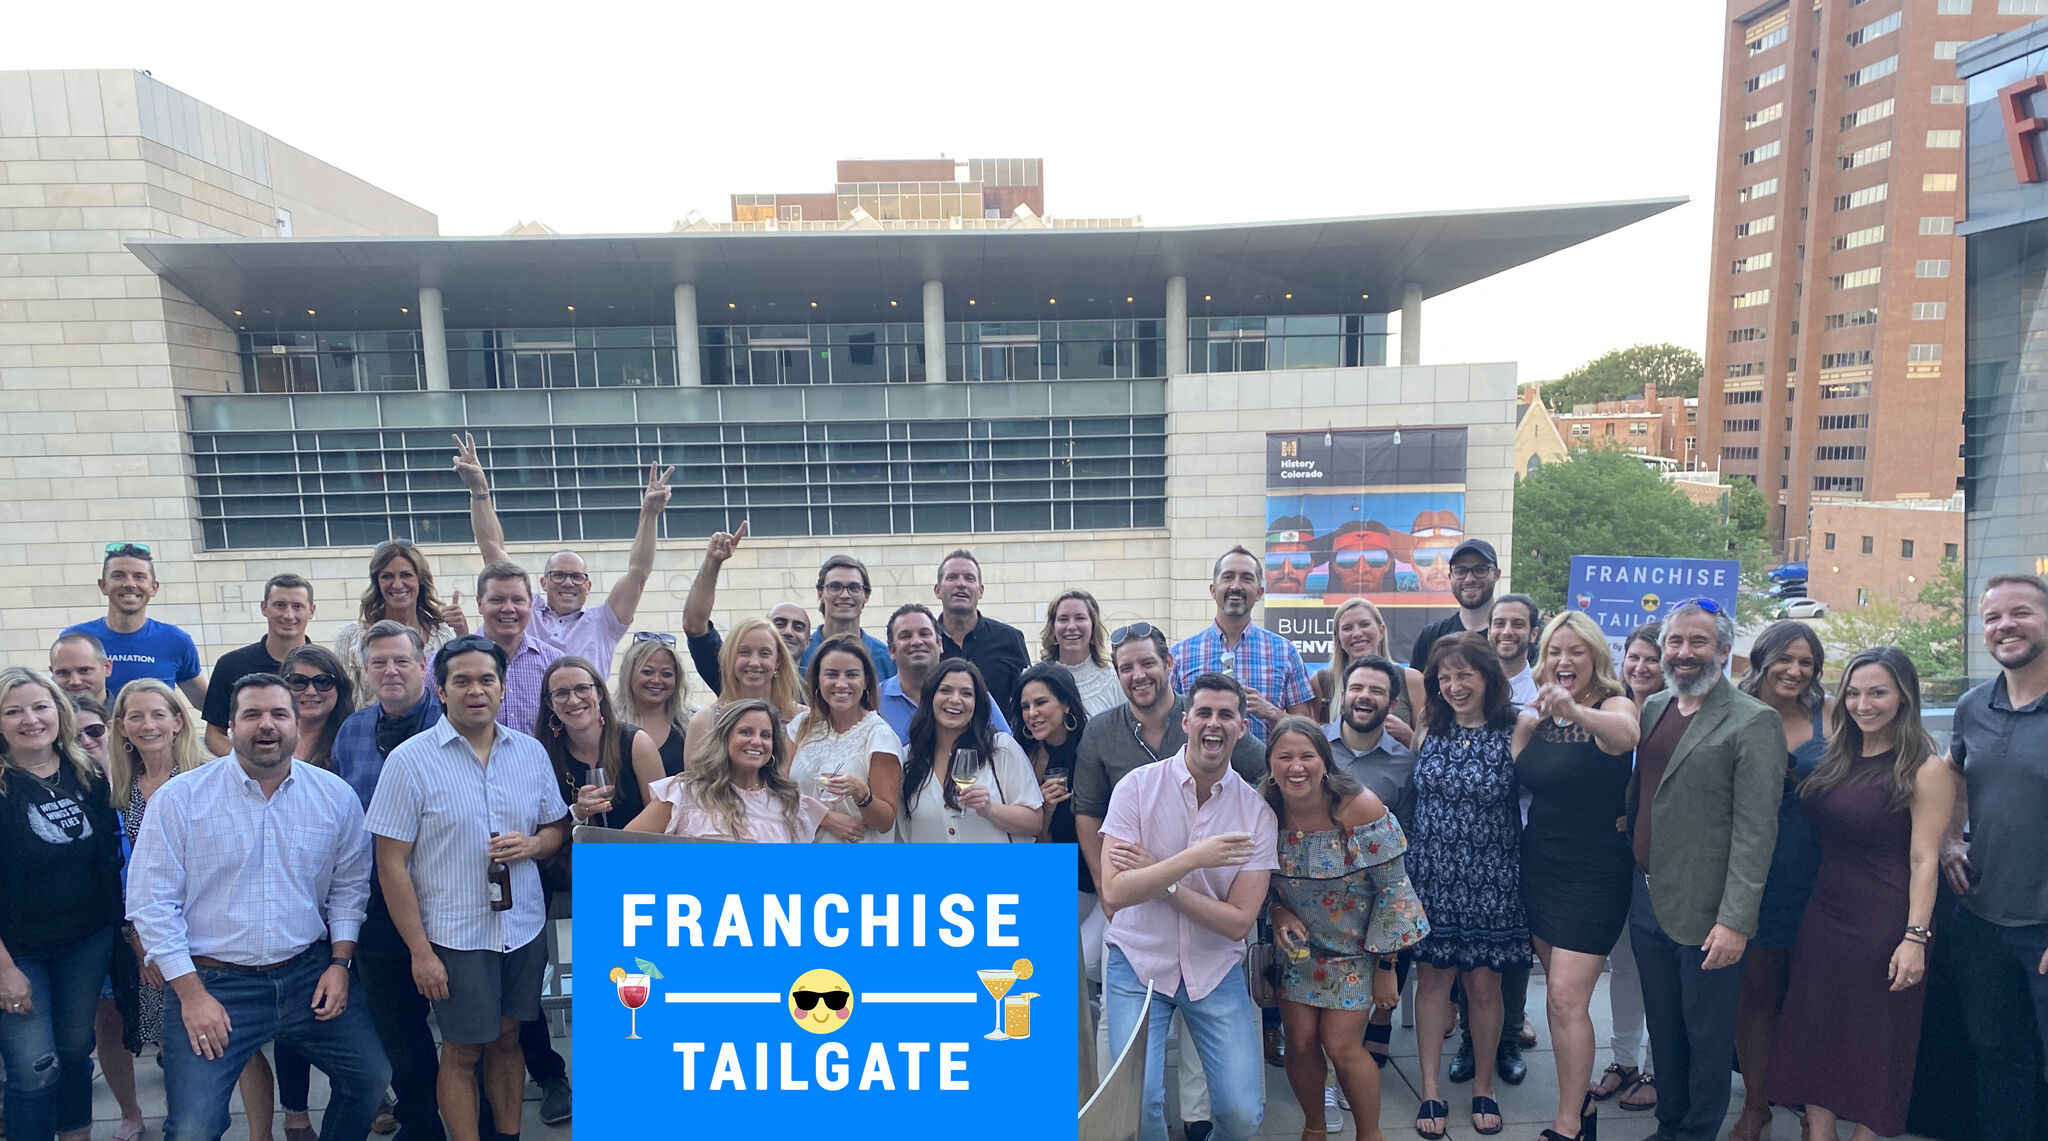 Franchise Tailgate event that George Abraham and Mary DeBonis attended